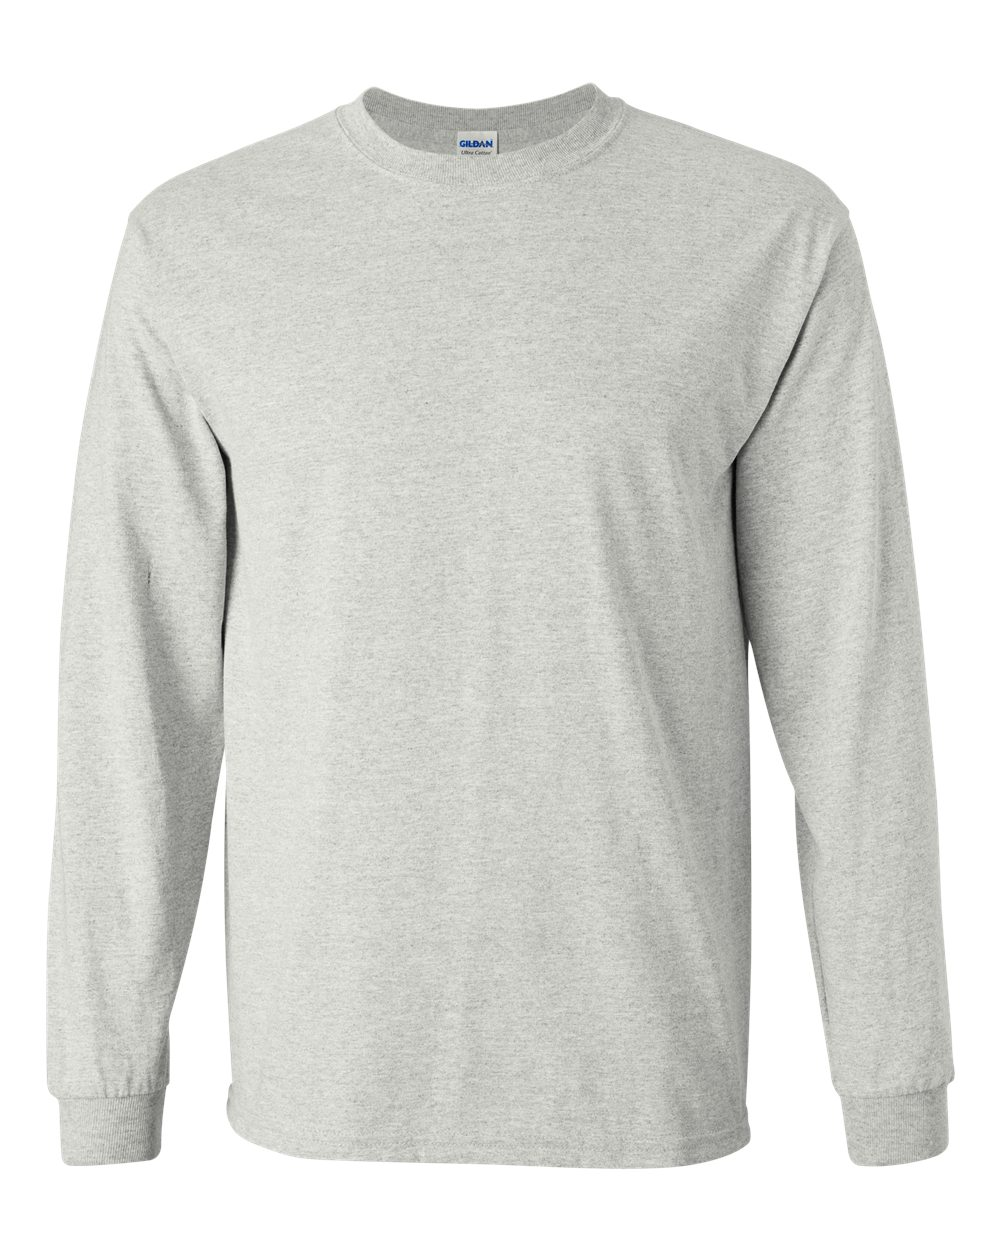 Long Sleeve Gray T Shirt